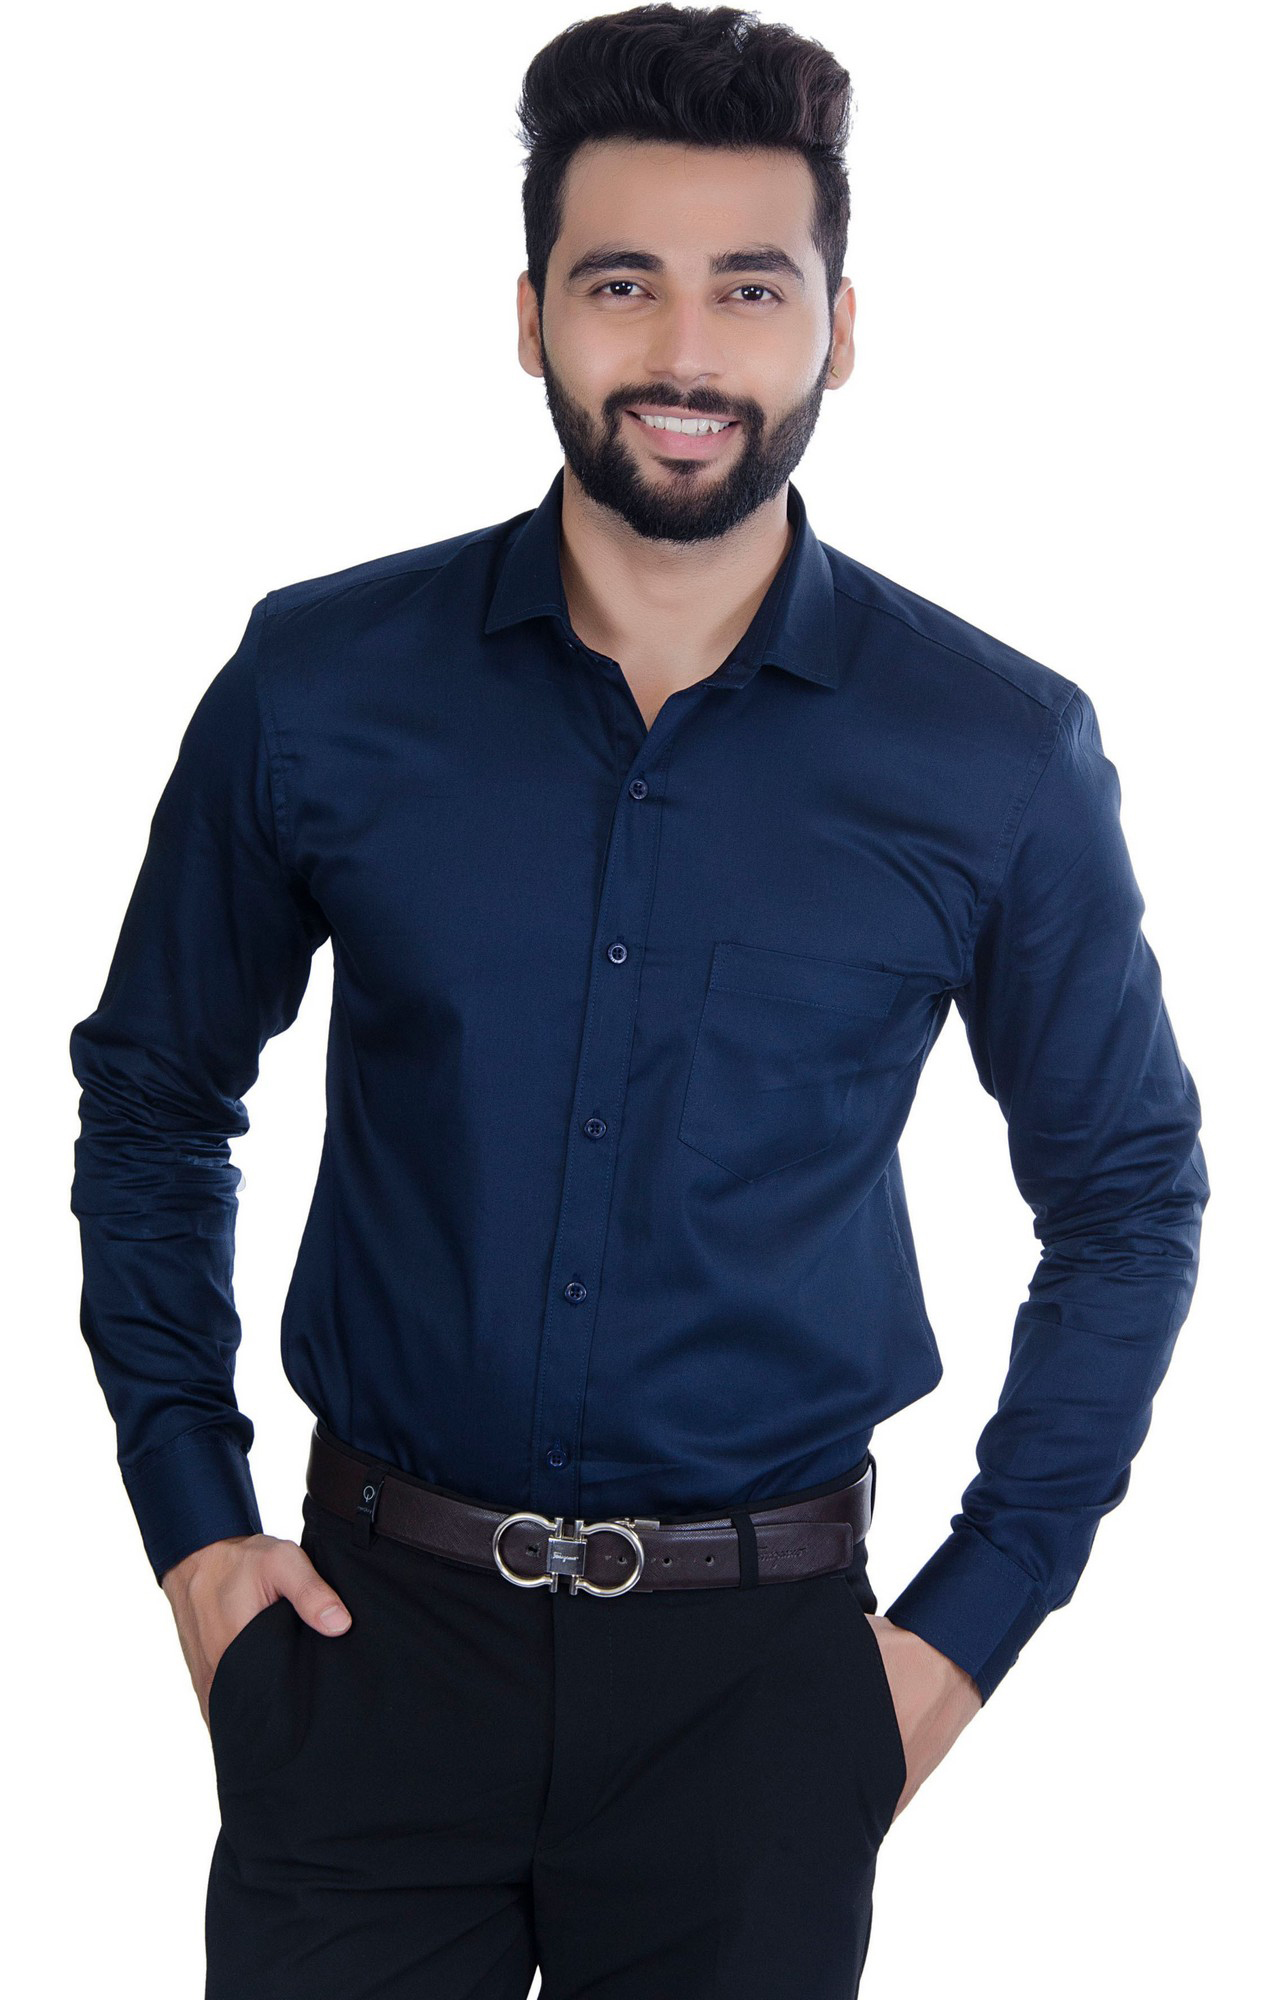 5th Anfold | FIFTH ANFOLD Solid Pure Cotton Formal Full Long Sleev Navy Blue Spread Collar Mens Shirt